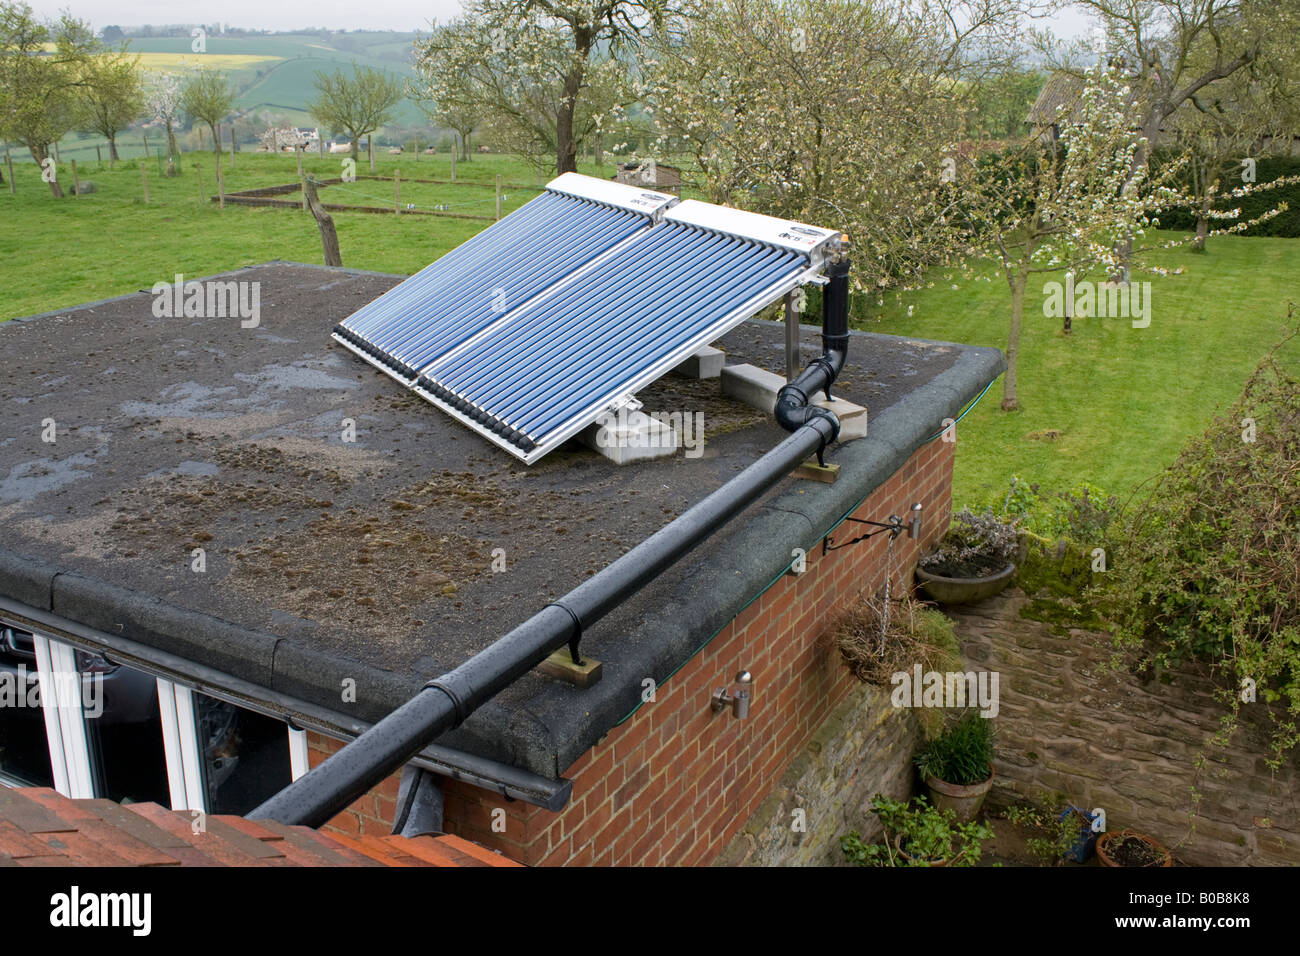 Solar thermal installation Bauer OPC 15 evacuated tubes on roof Bewdley UK - Stock Image